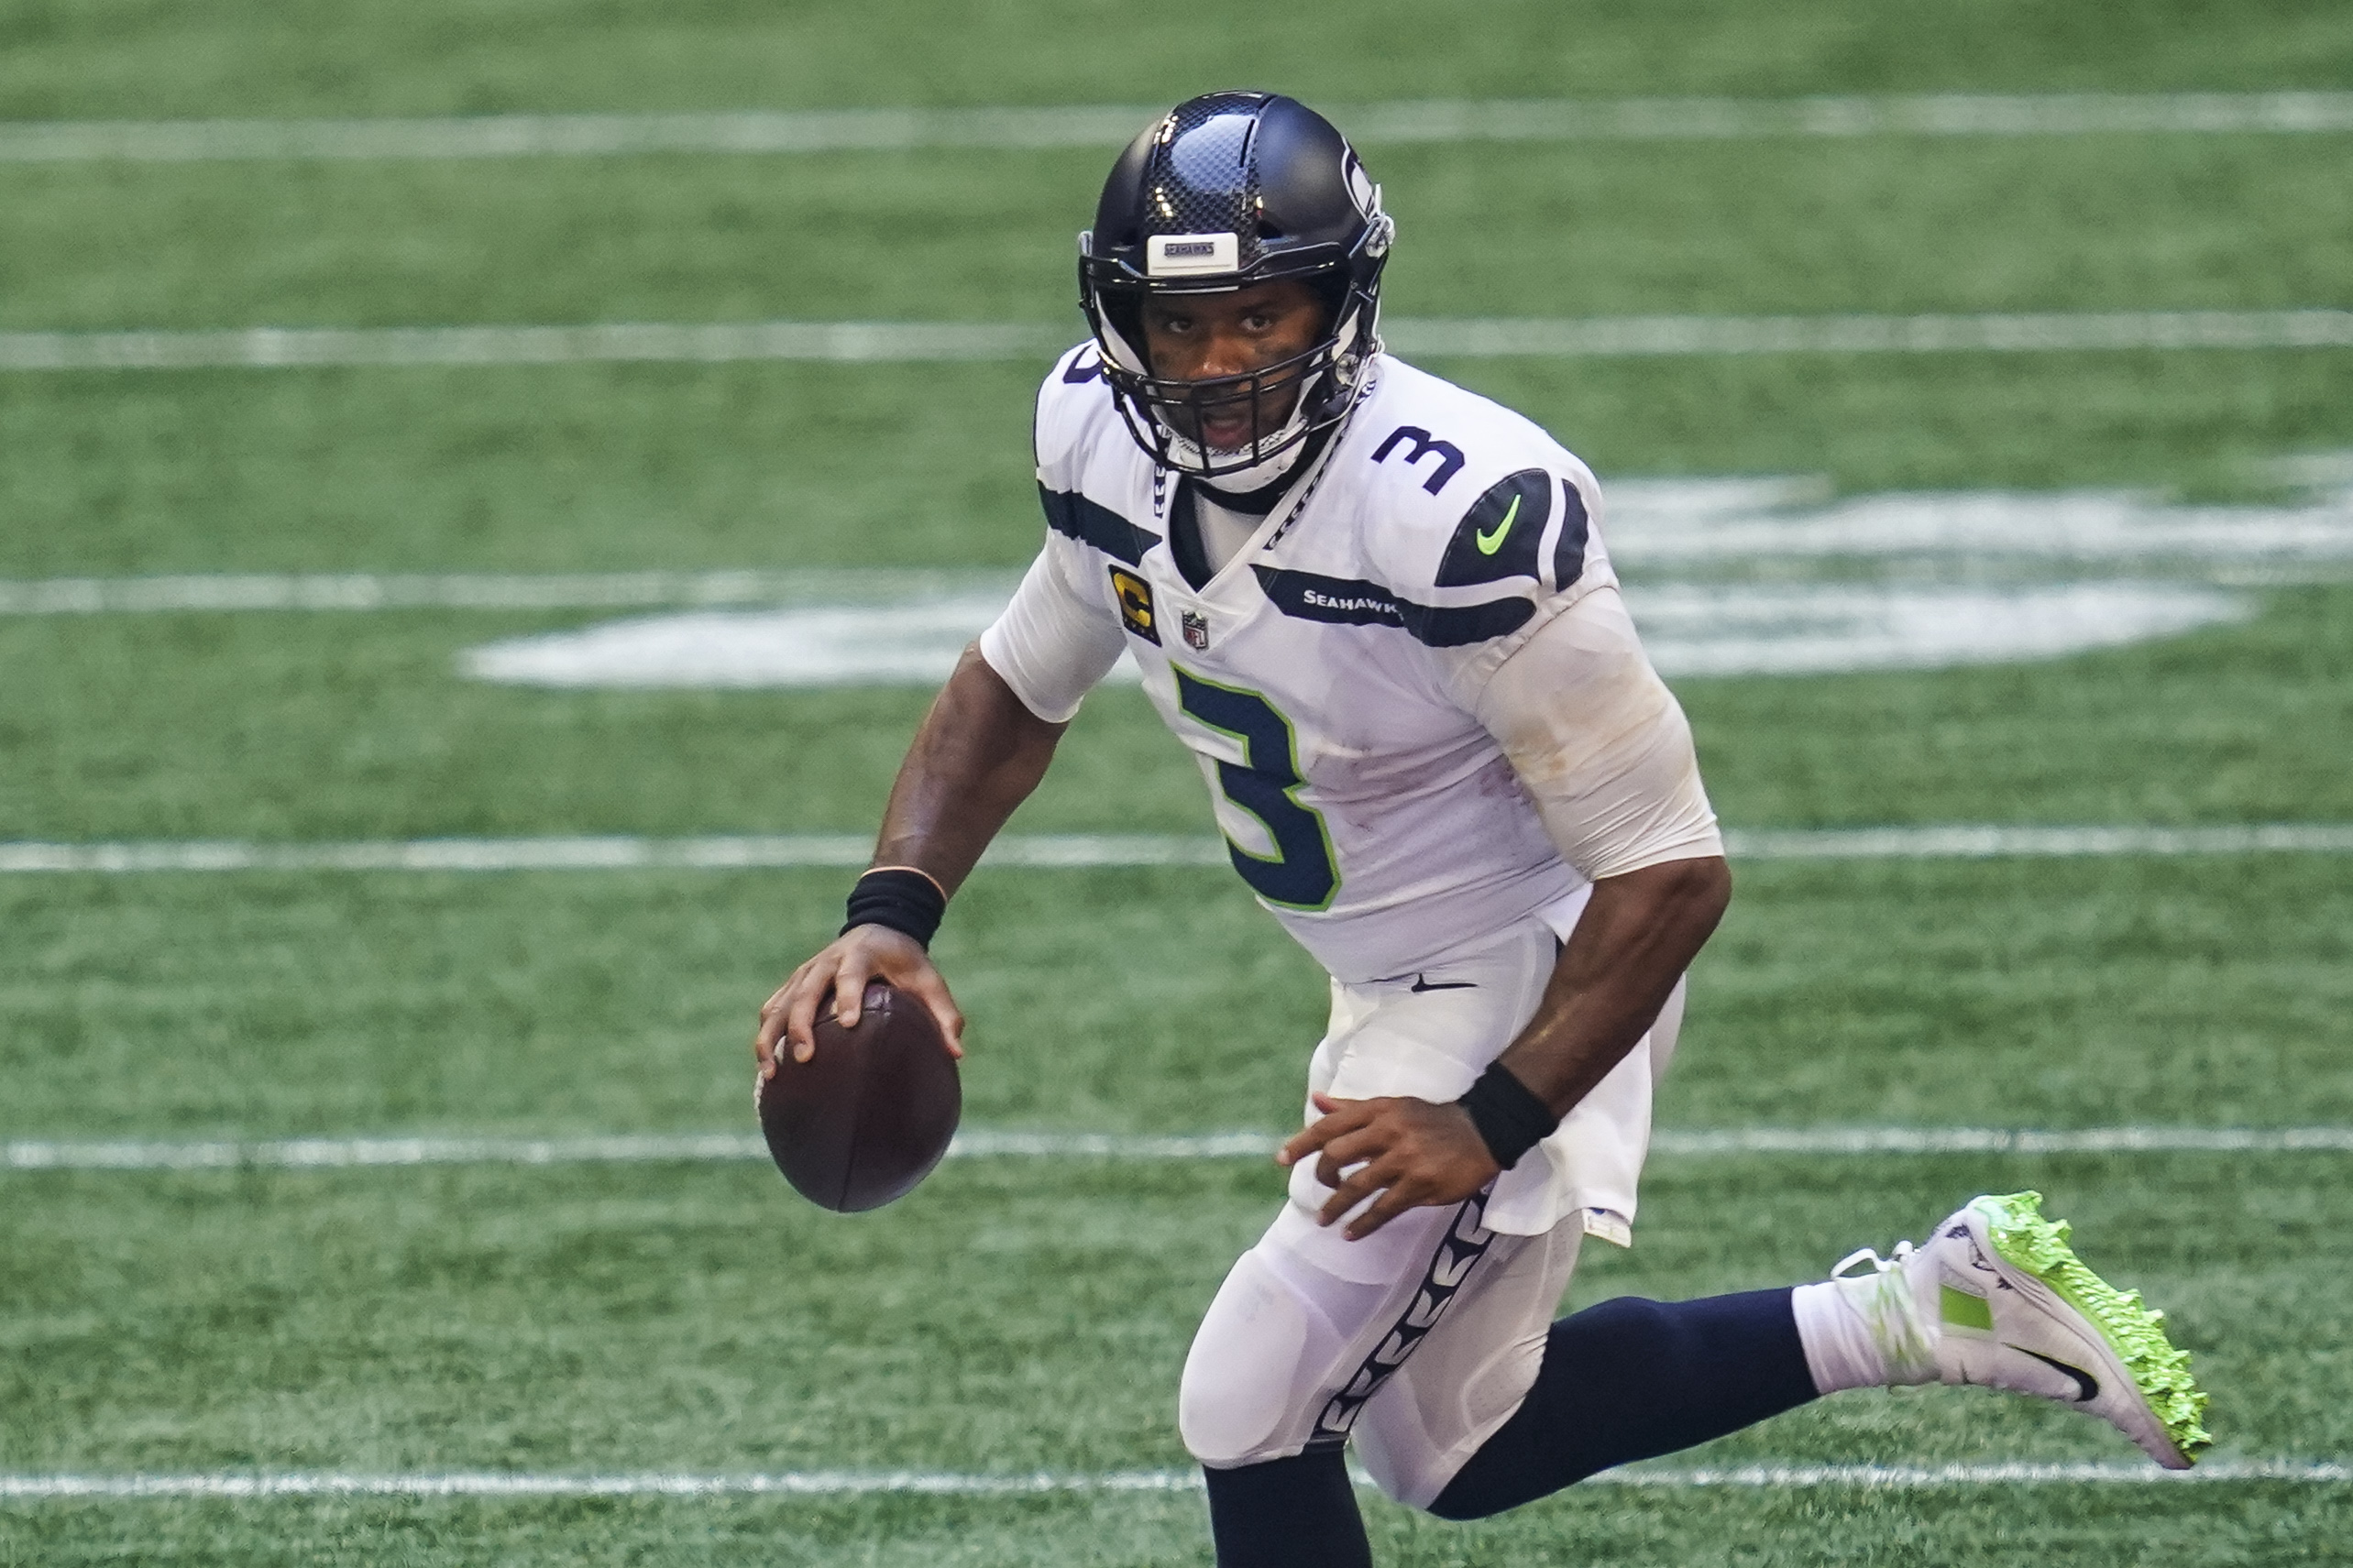 Seattle Seahawks quarterback Russell Wilson runs with the ball against the Atlanta Falcons during the second half at Mercedes-Benz Stadium.